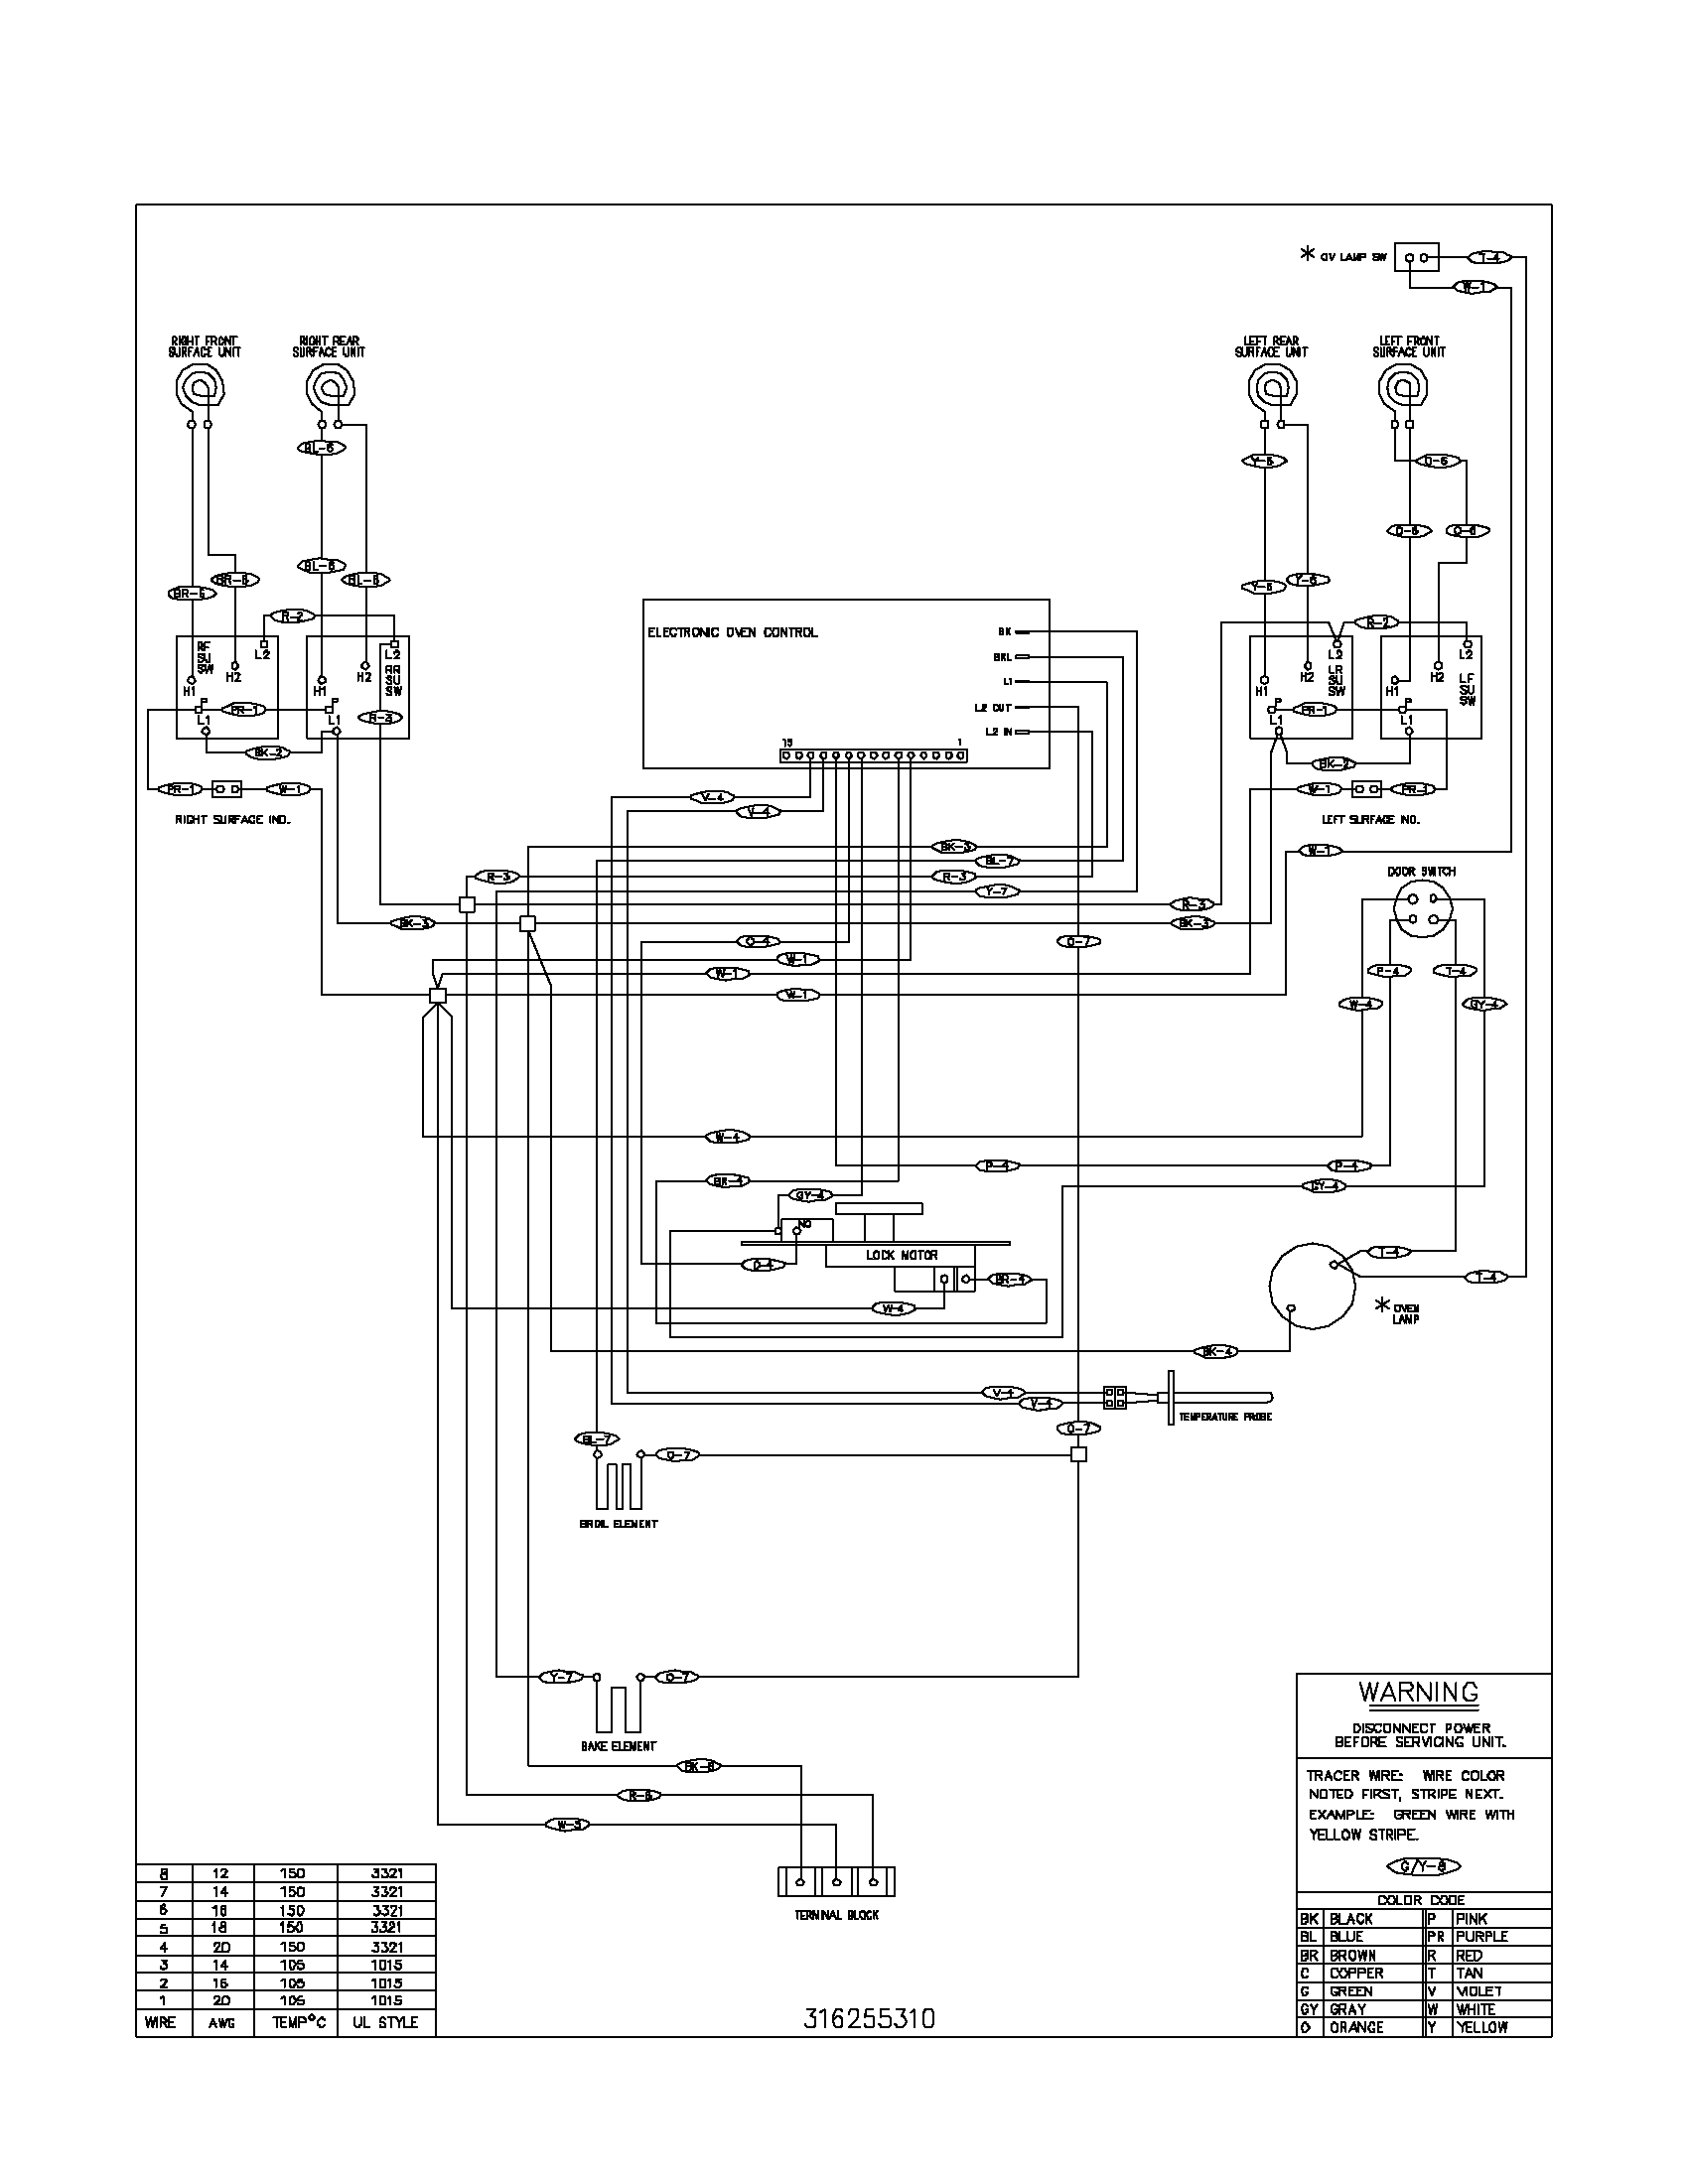 Range Schematic Wiring - Bookmark About Wiring Diagram